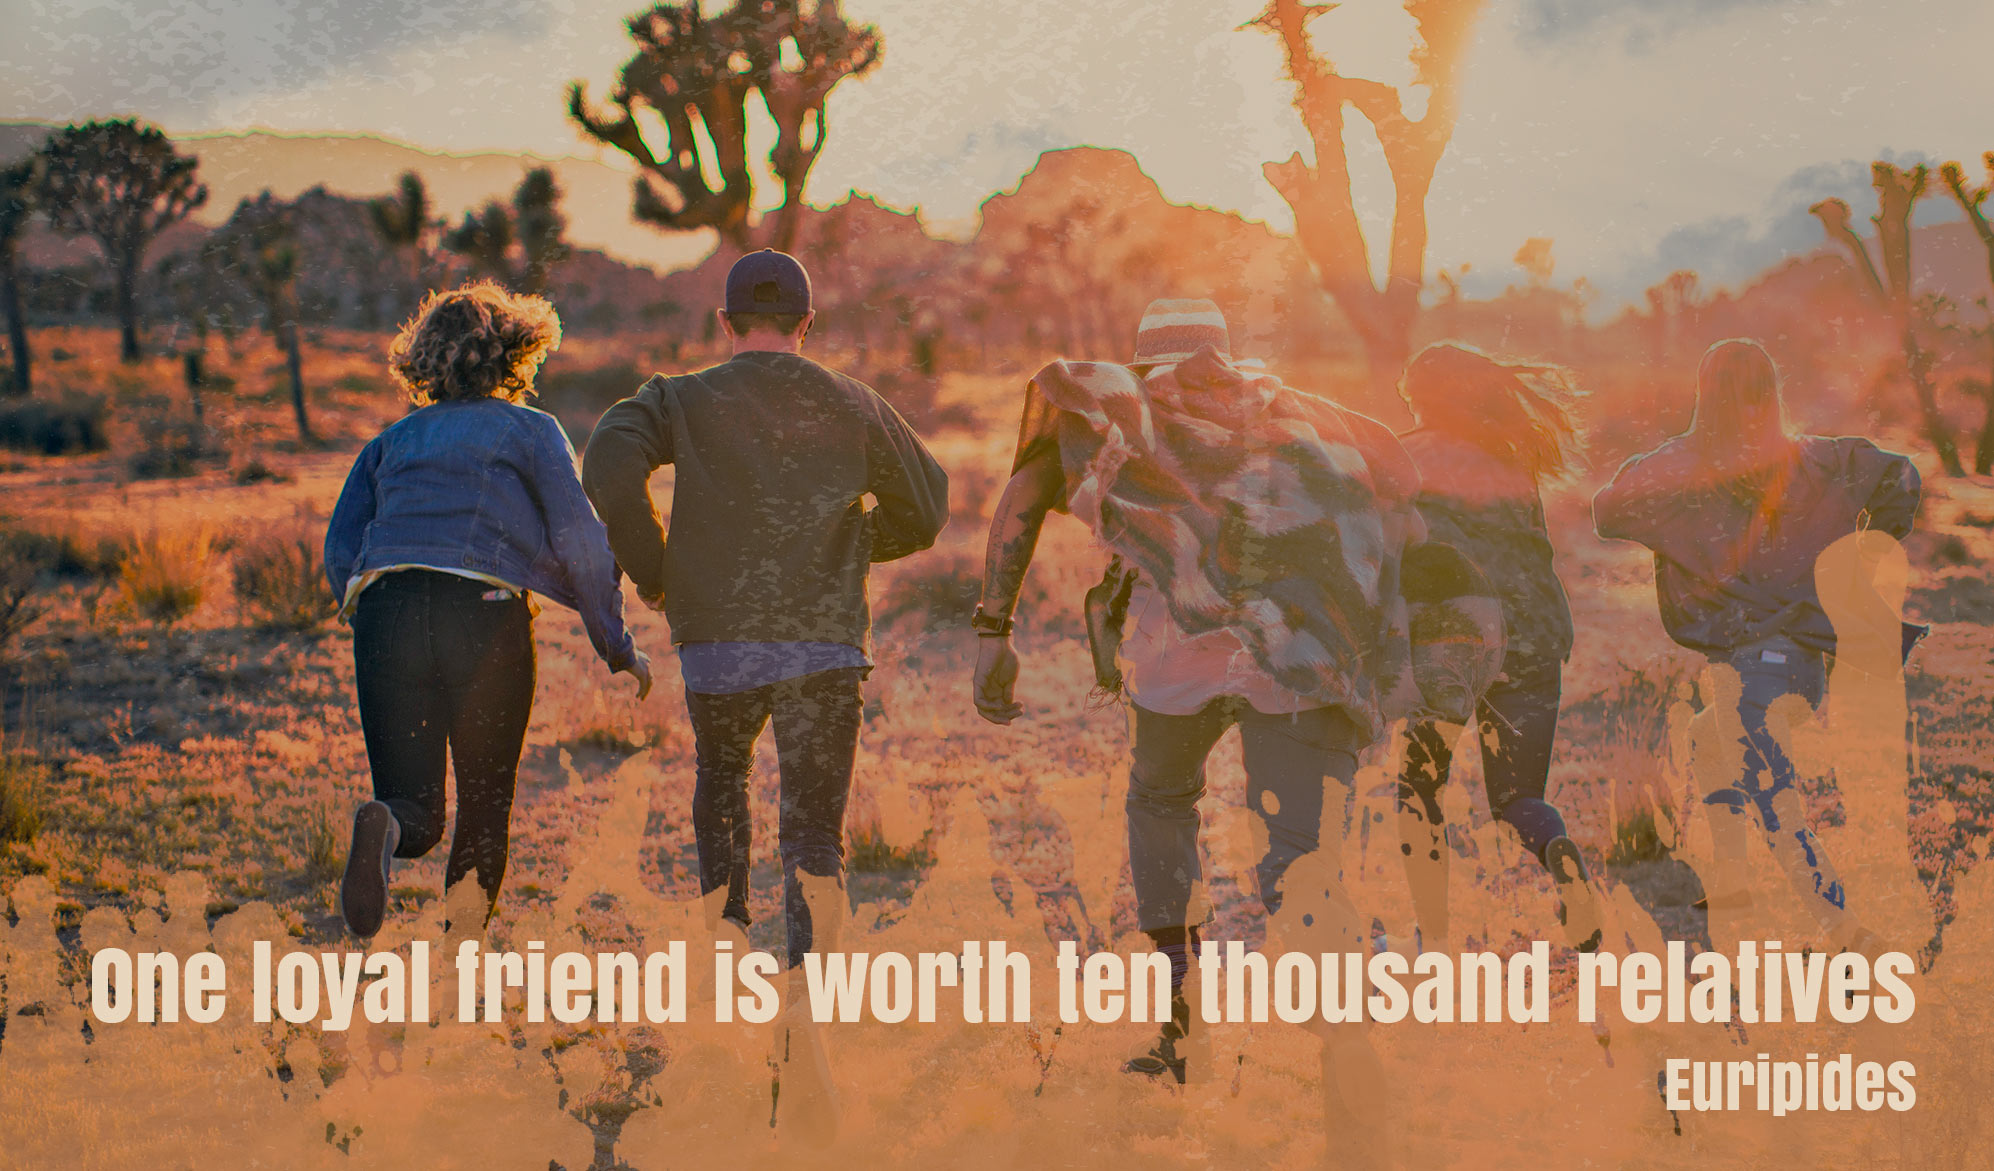 daily inspirational quote image: 5 friends running towards the sunrise at Joshua Tree National Park